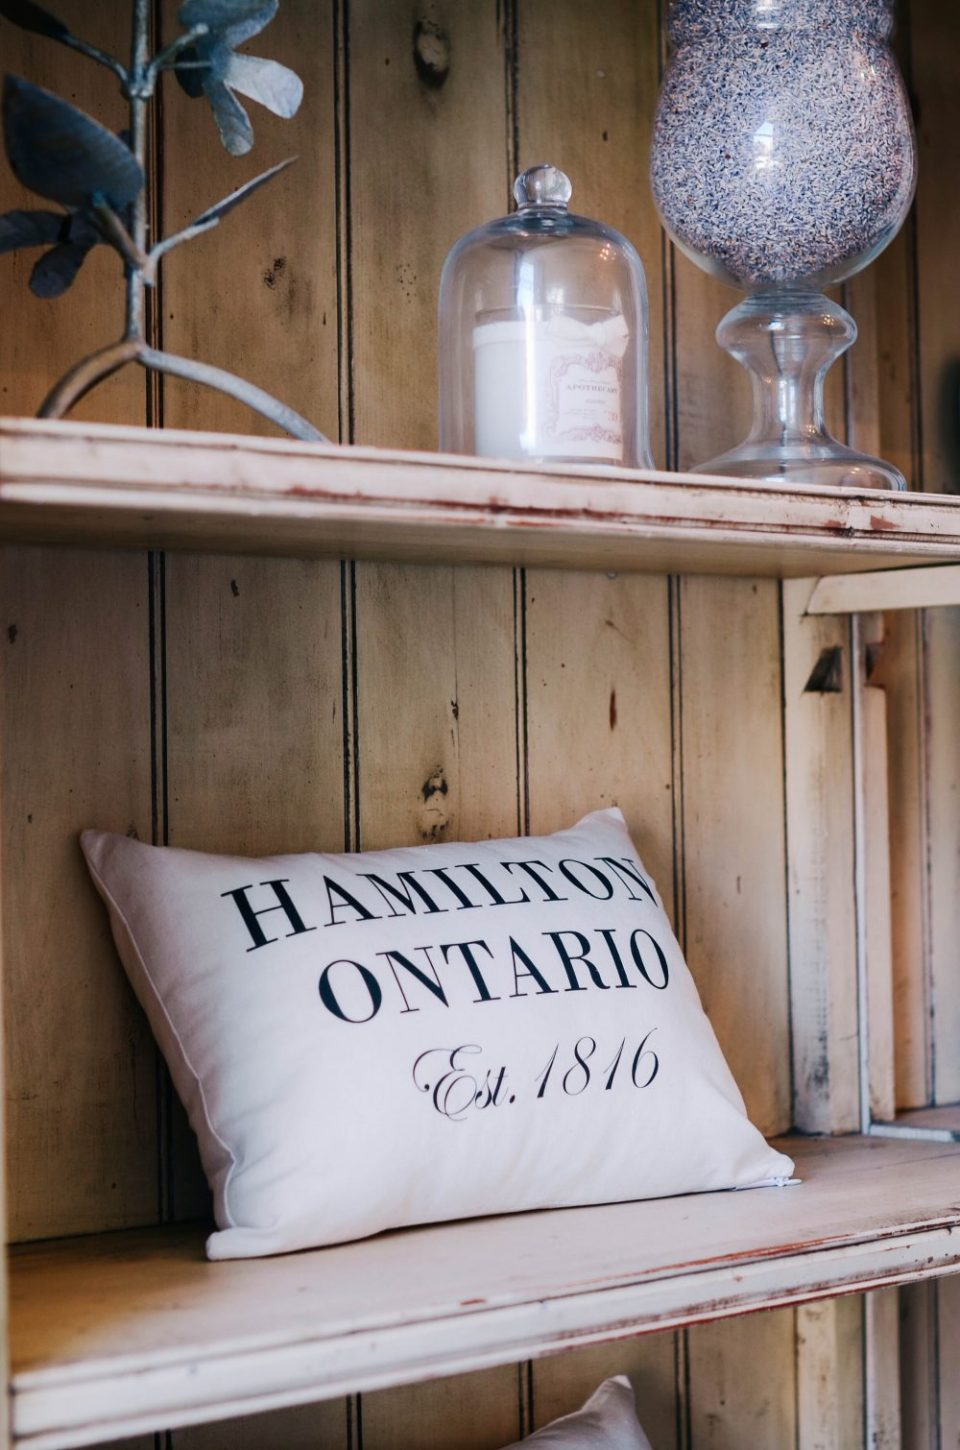 How to Travel to Hamilton, Ontario on a Budget | Places to See and Things to Do while saving Money